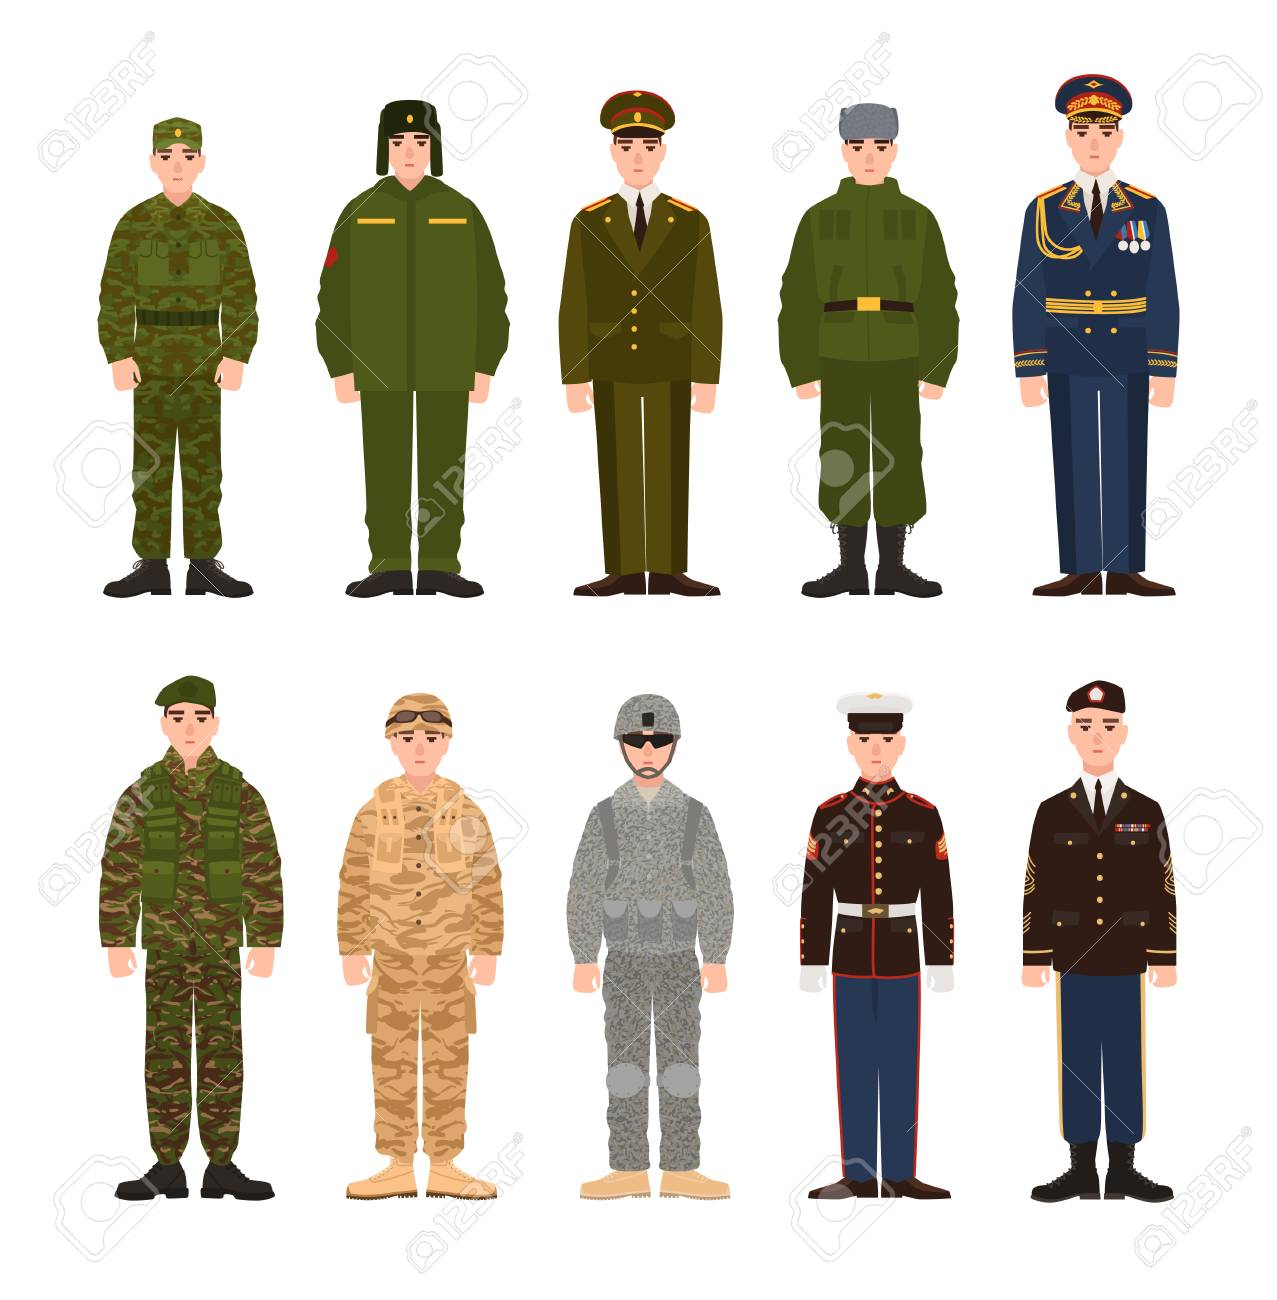 Collection of Russian and American military people or personnel dressed in various uniform. Bundle of soldiers of Russia and USA. Set of flat cartoon characters. Modern colorful vector illustration. - 90672401